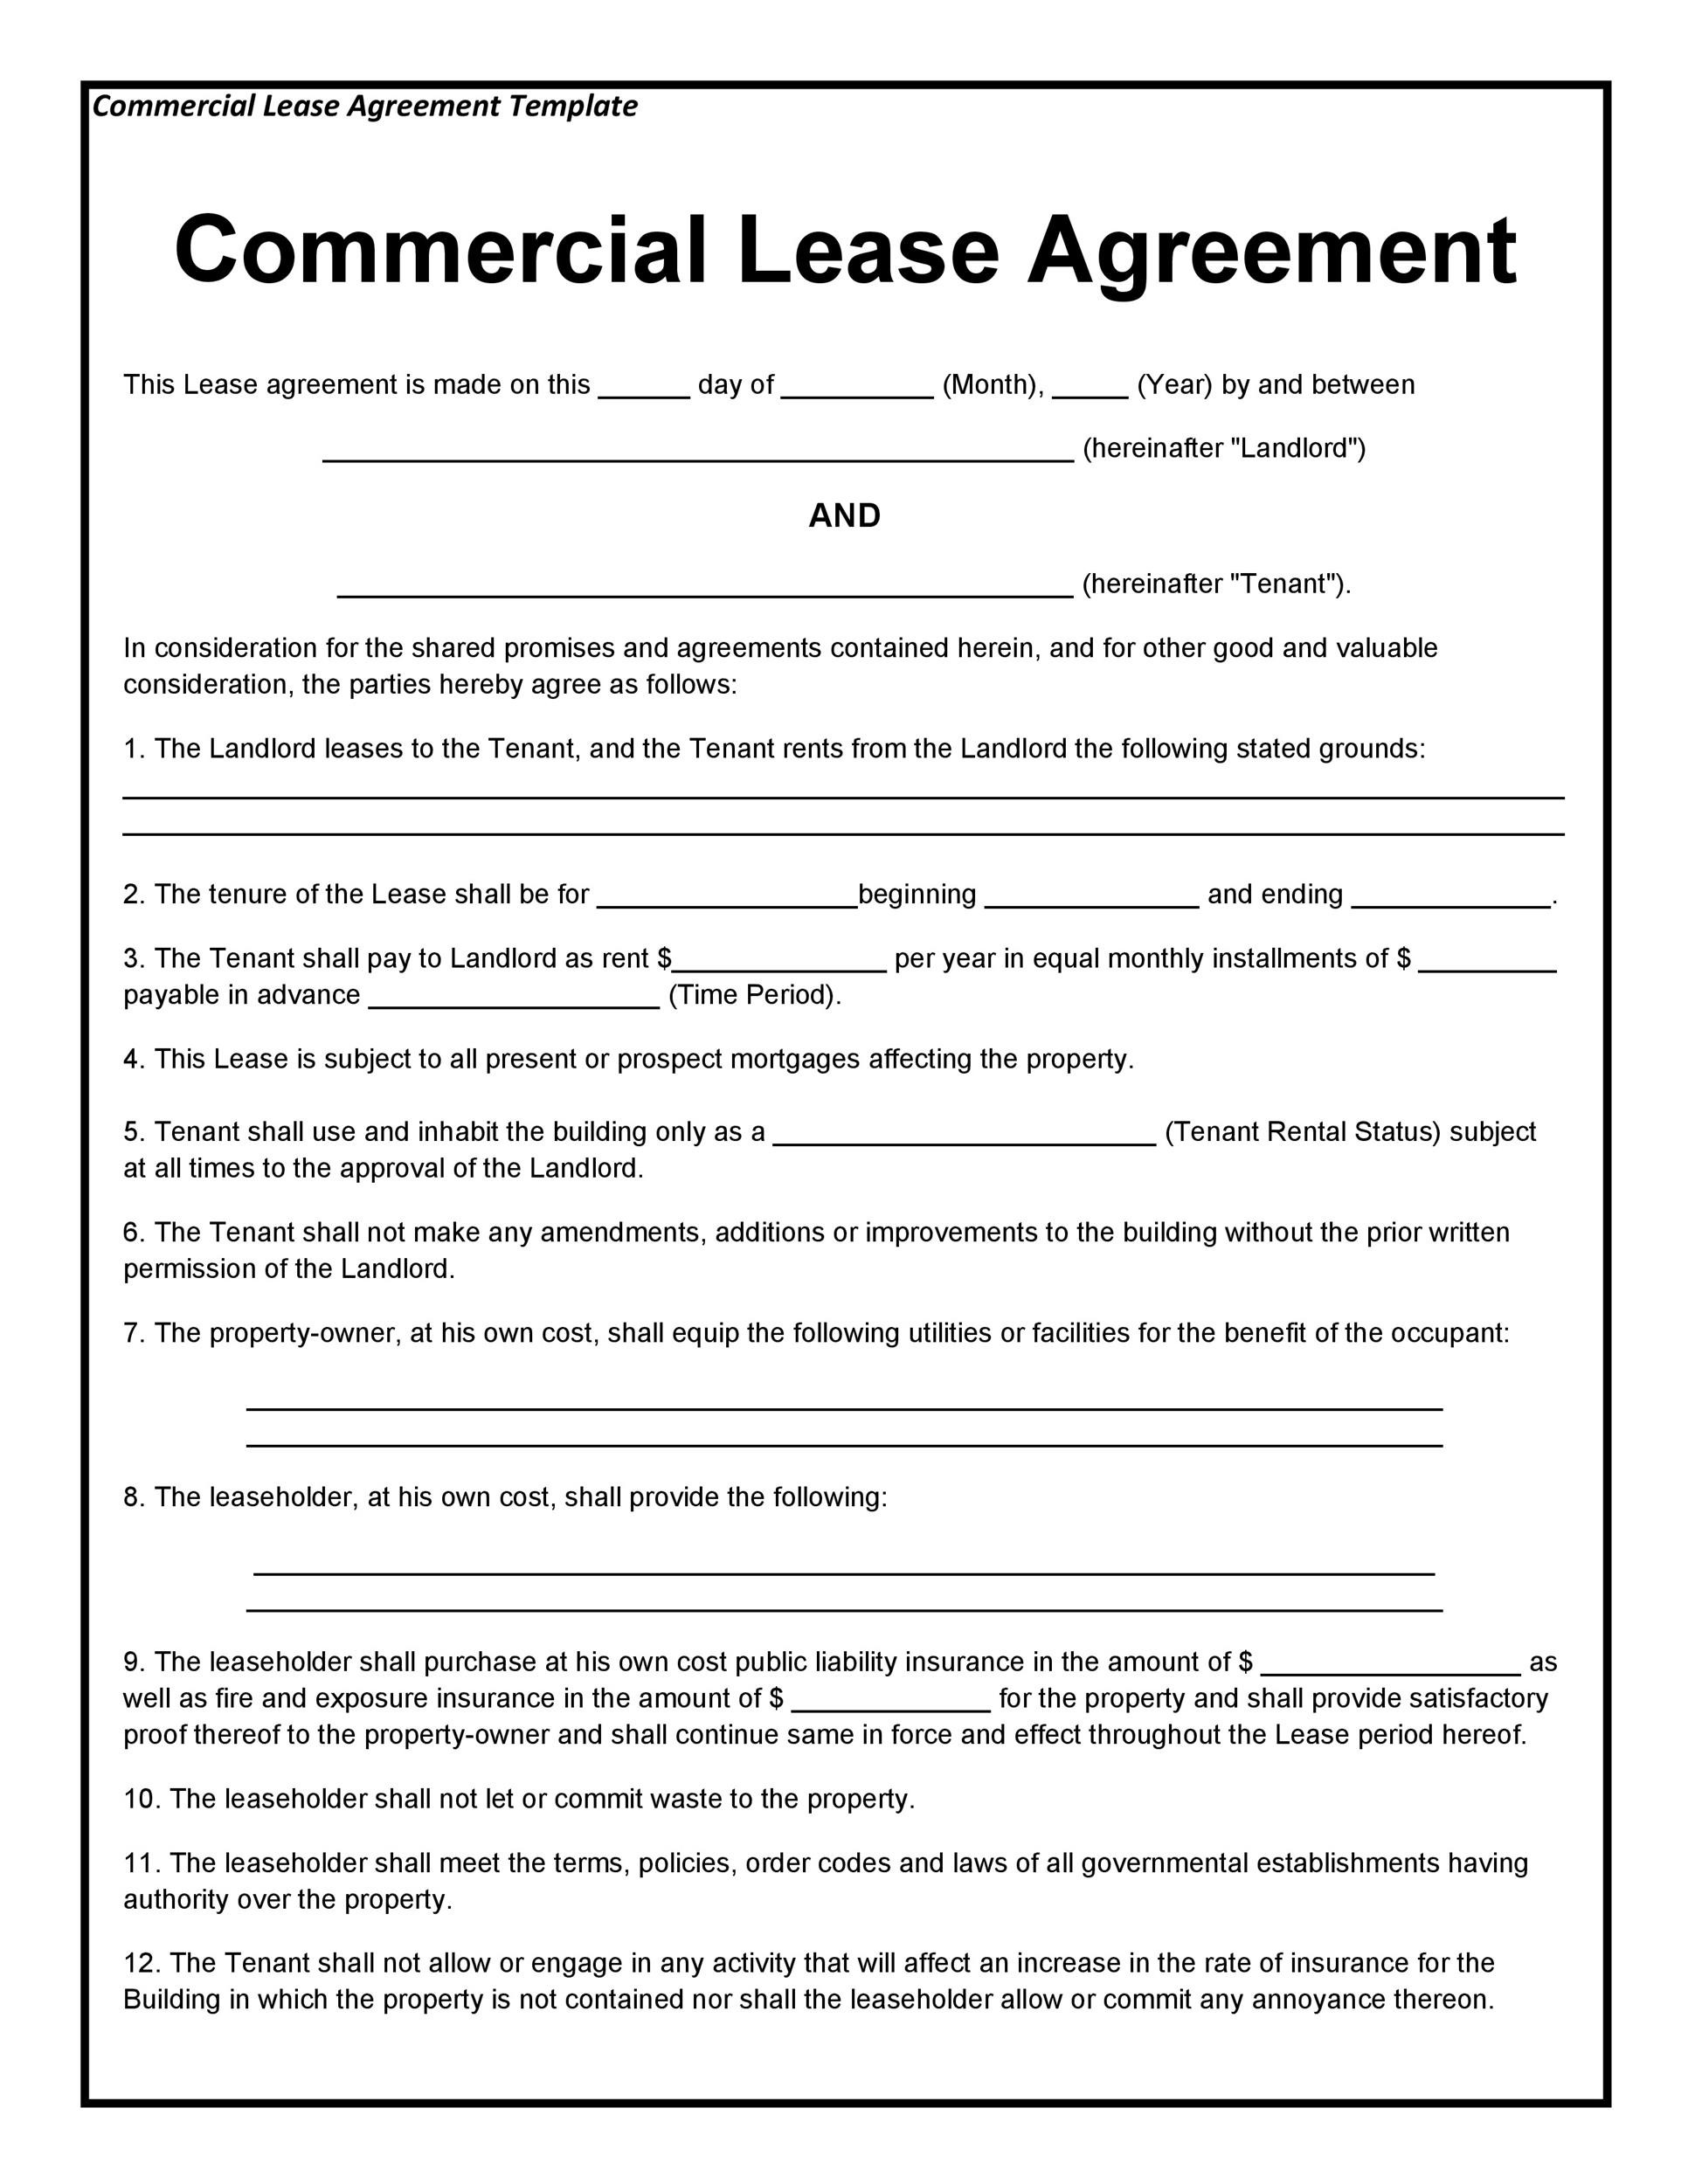 commercial lease agreement template 04. Resume Example. Resume CV Cover Letter